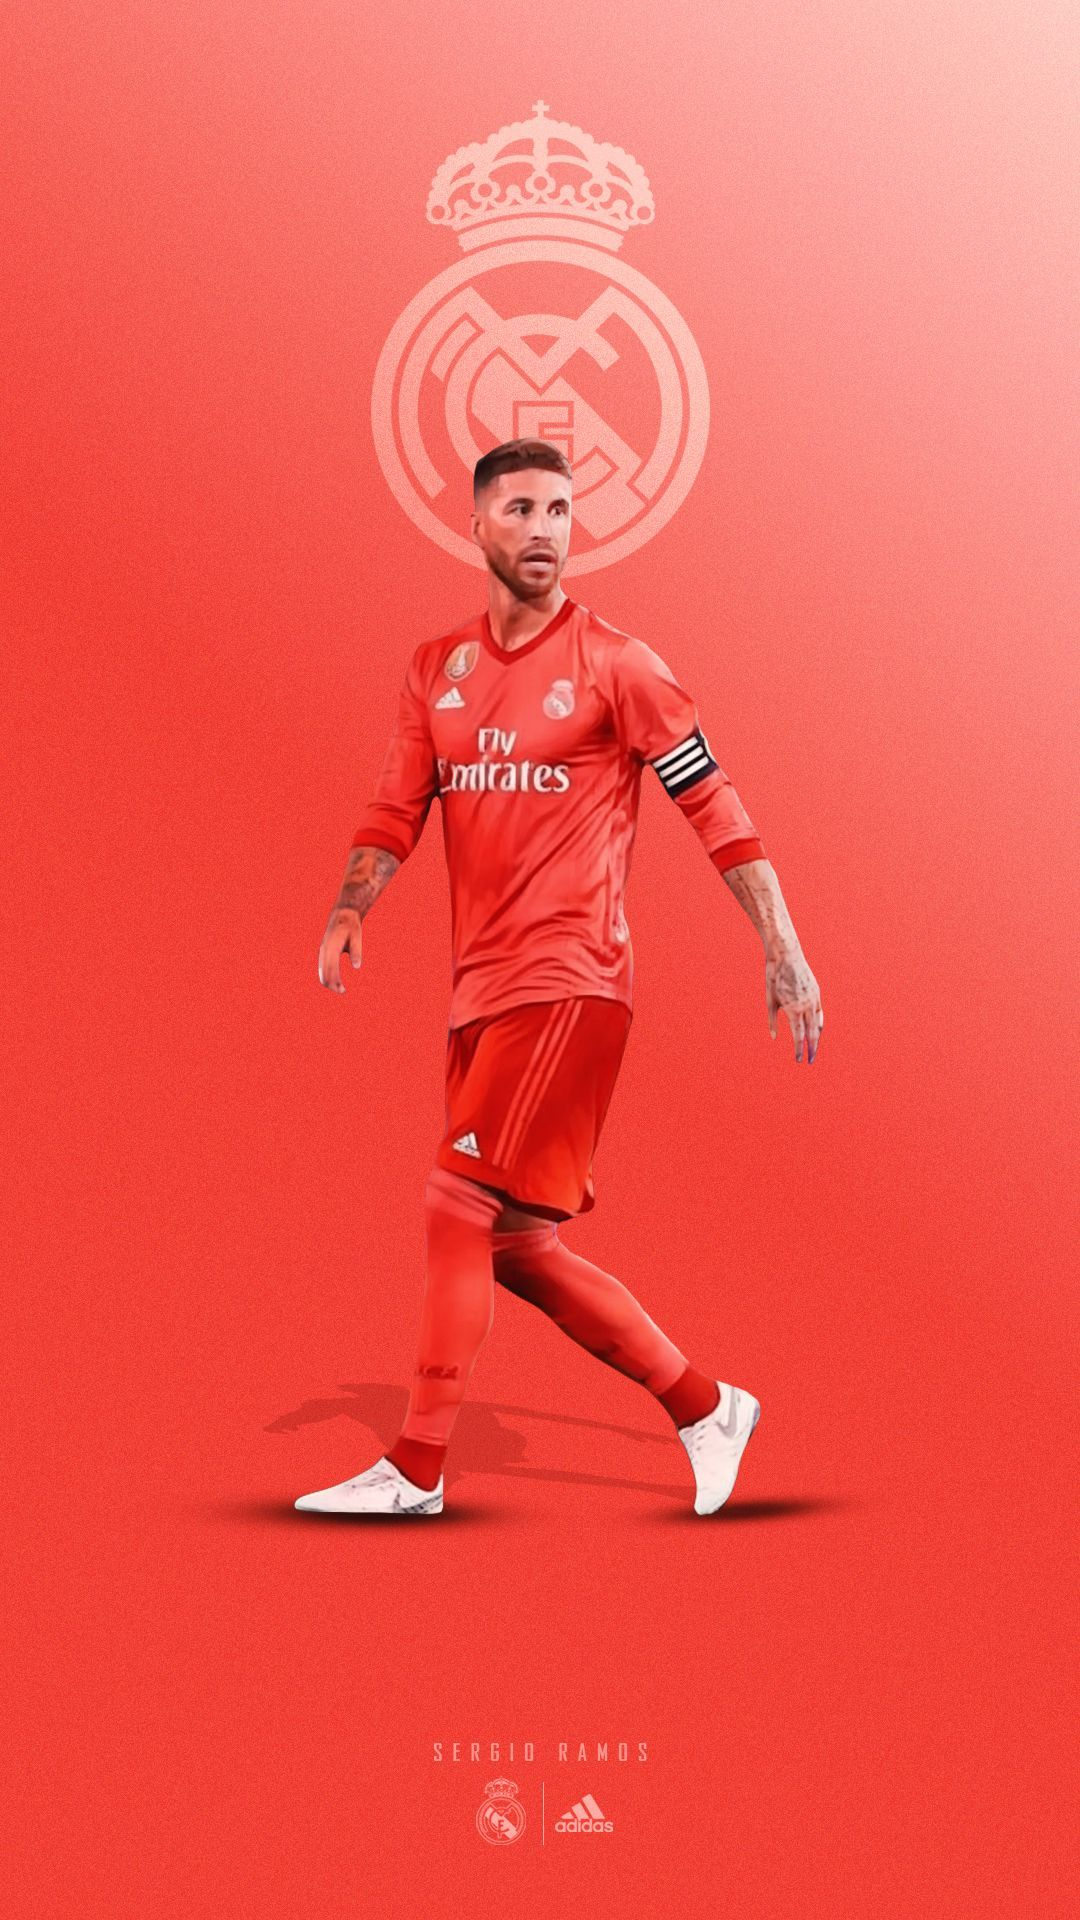 Real Madrid 2020 Wallpapers Top Free Real Madrid 2020 Backgrounds Wallpaperaccess